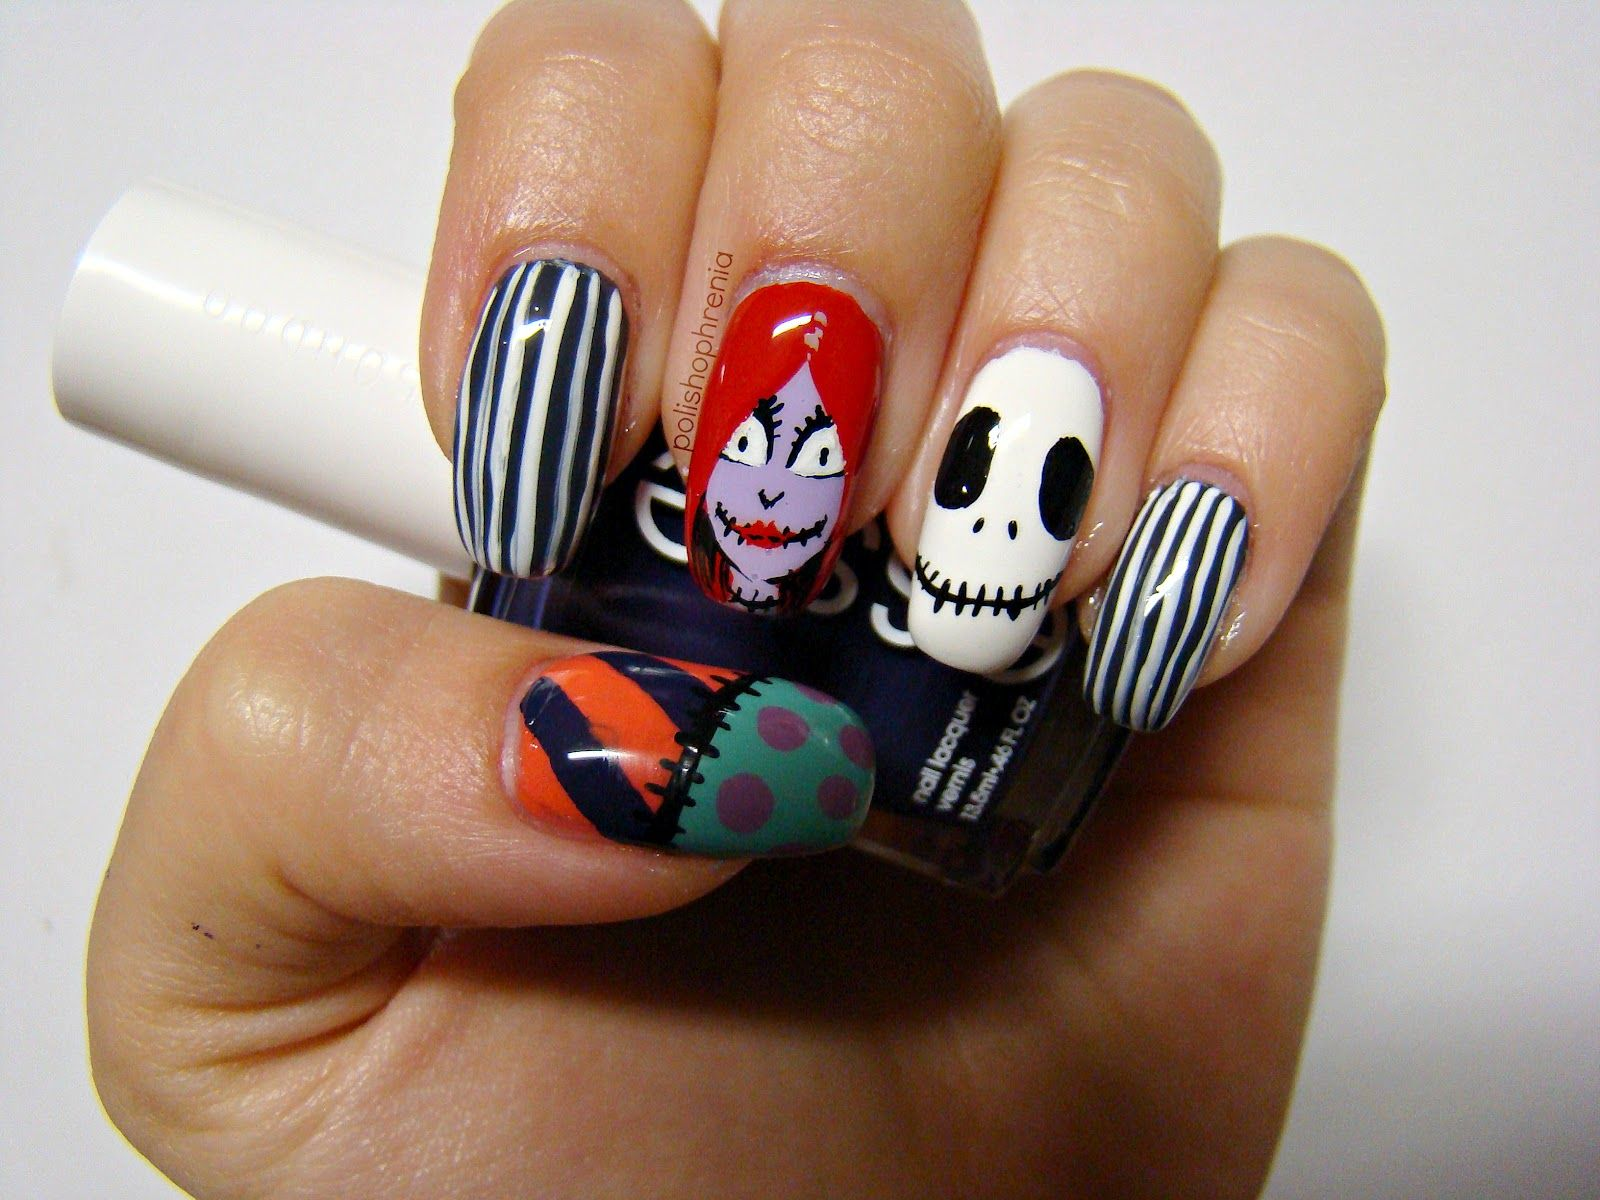 Nightmare before christmas. Jack, Sally and striped nails!! | Nails ...